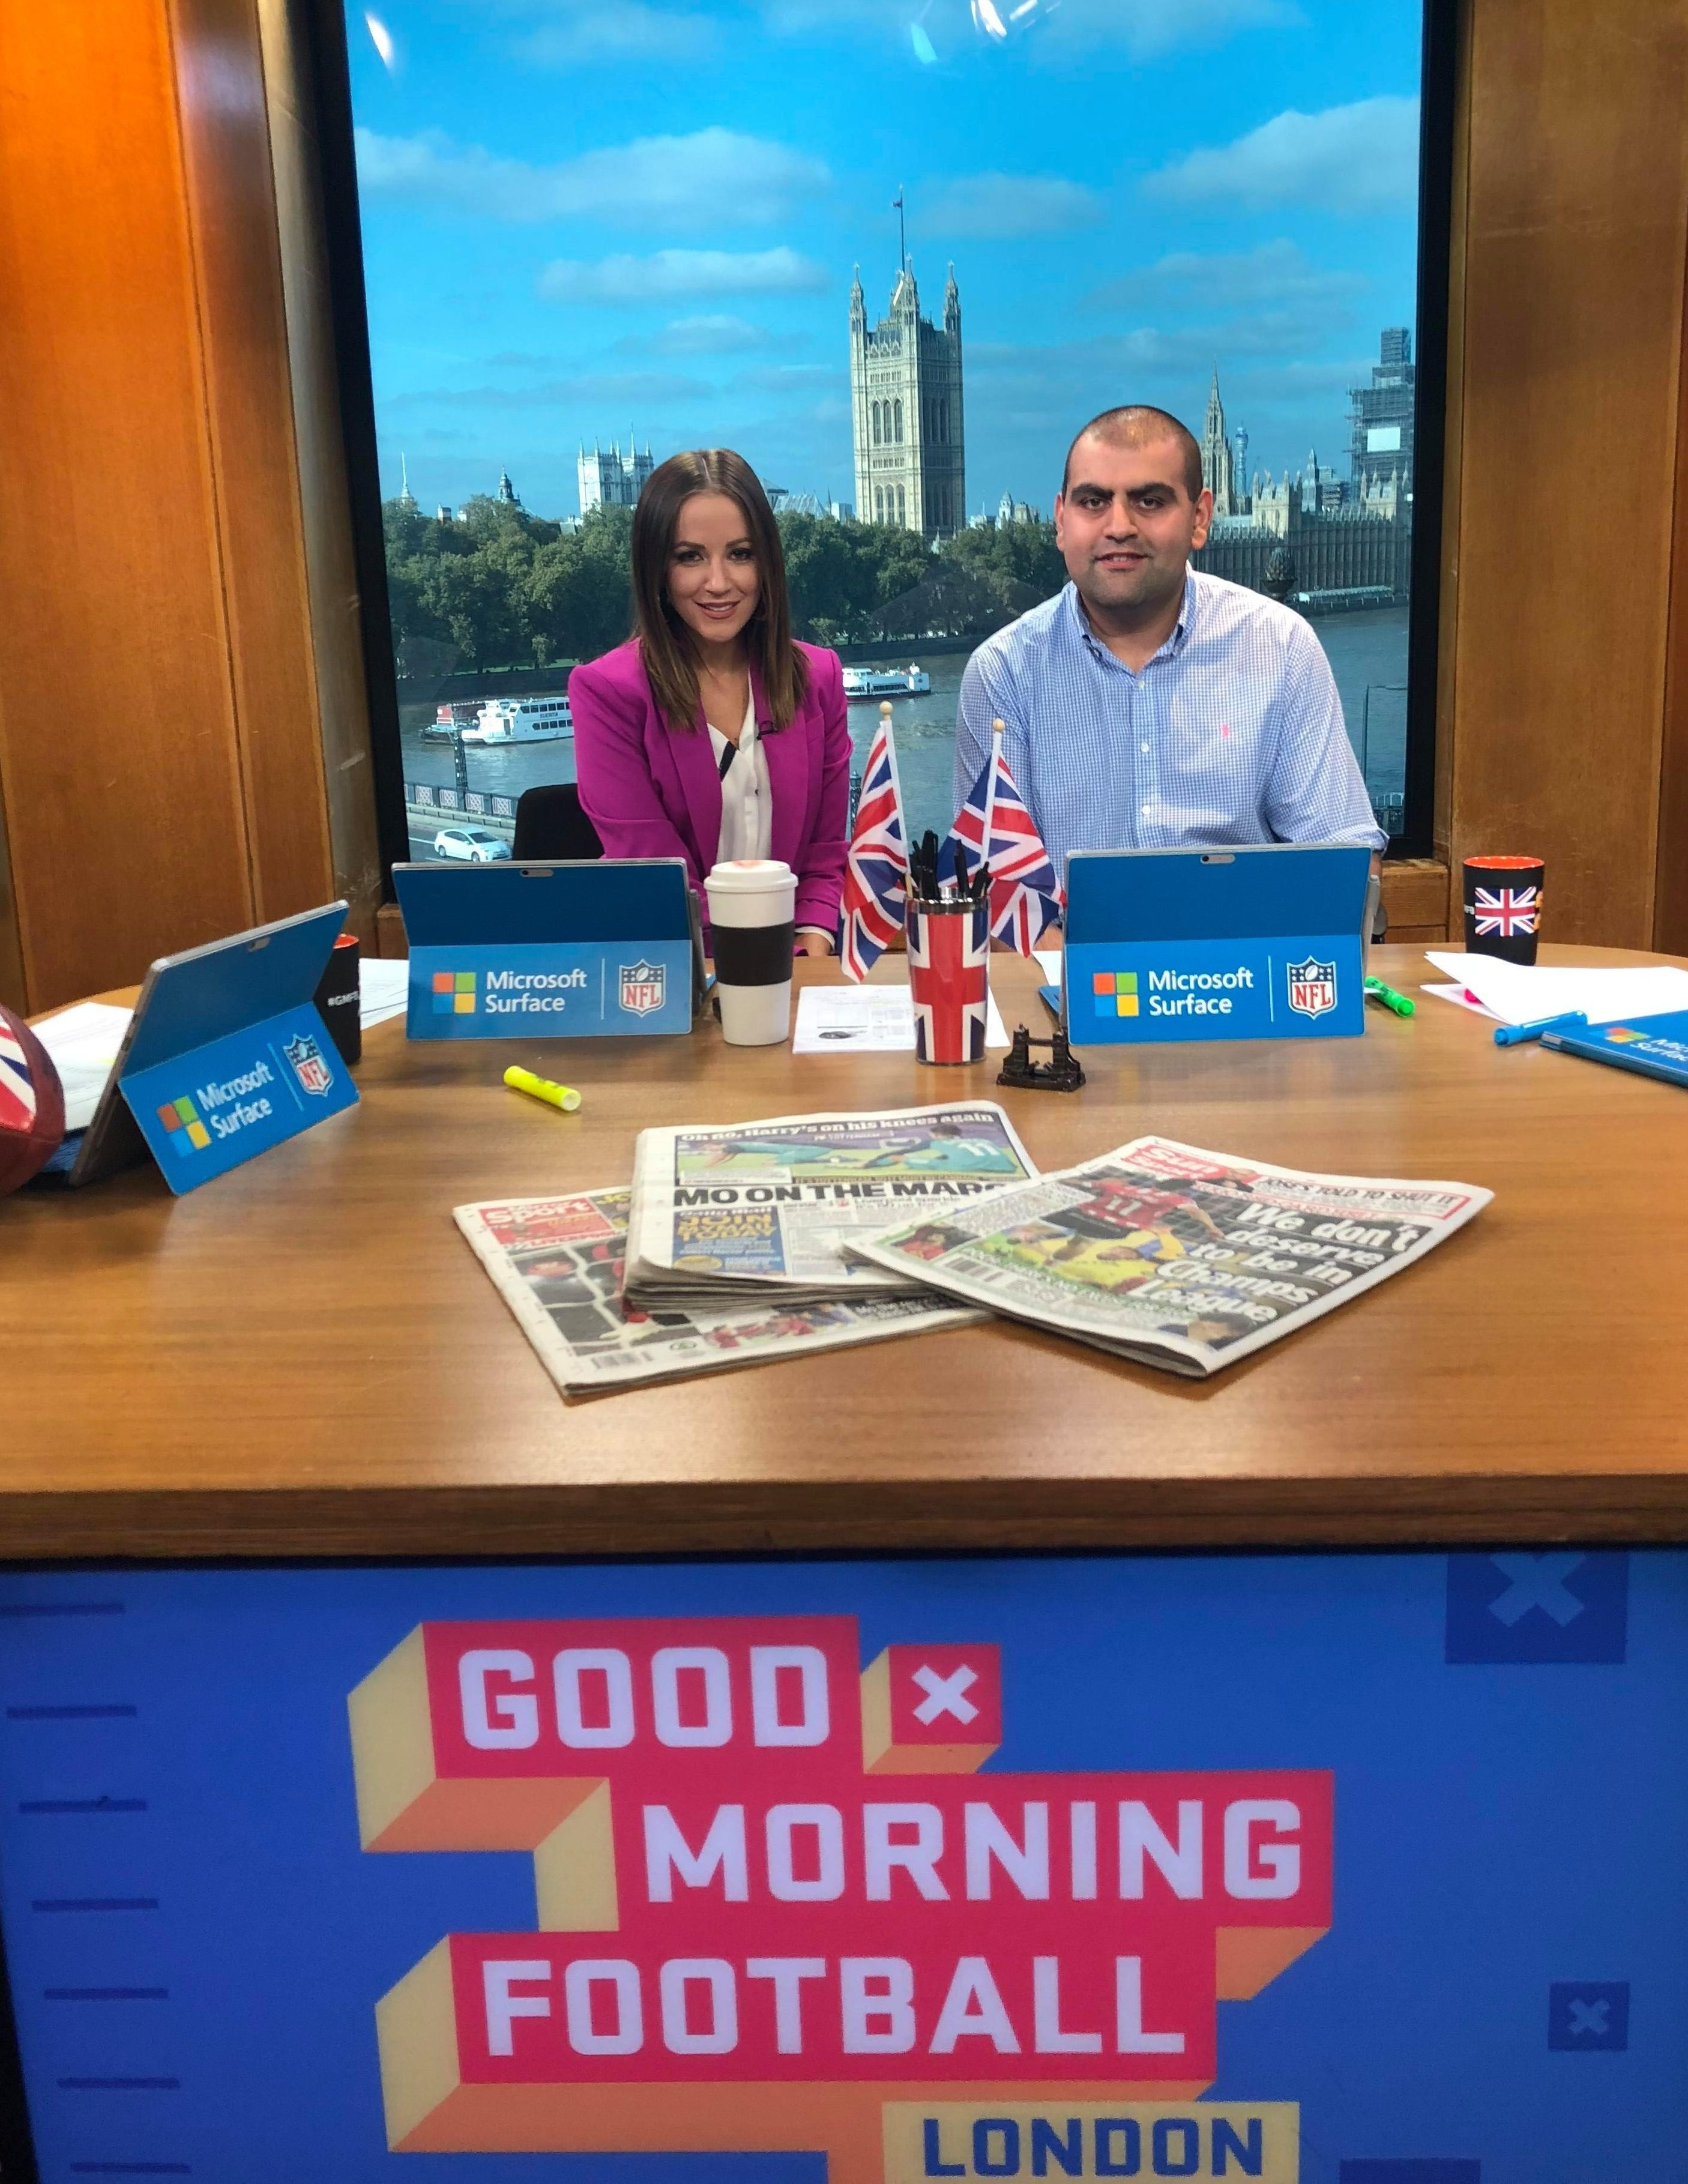 SunSport's Sunni Upal went behind the scenes on Good Morning Football last week